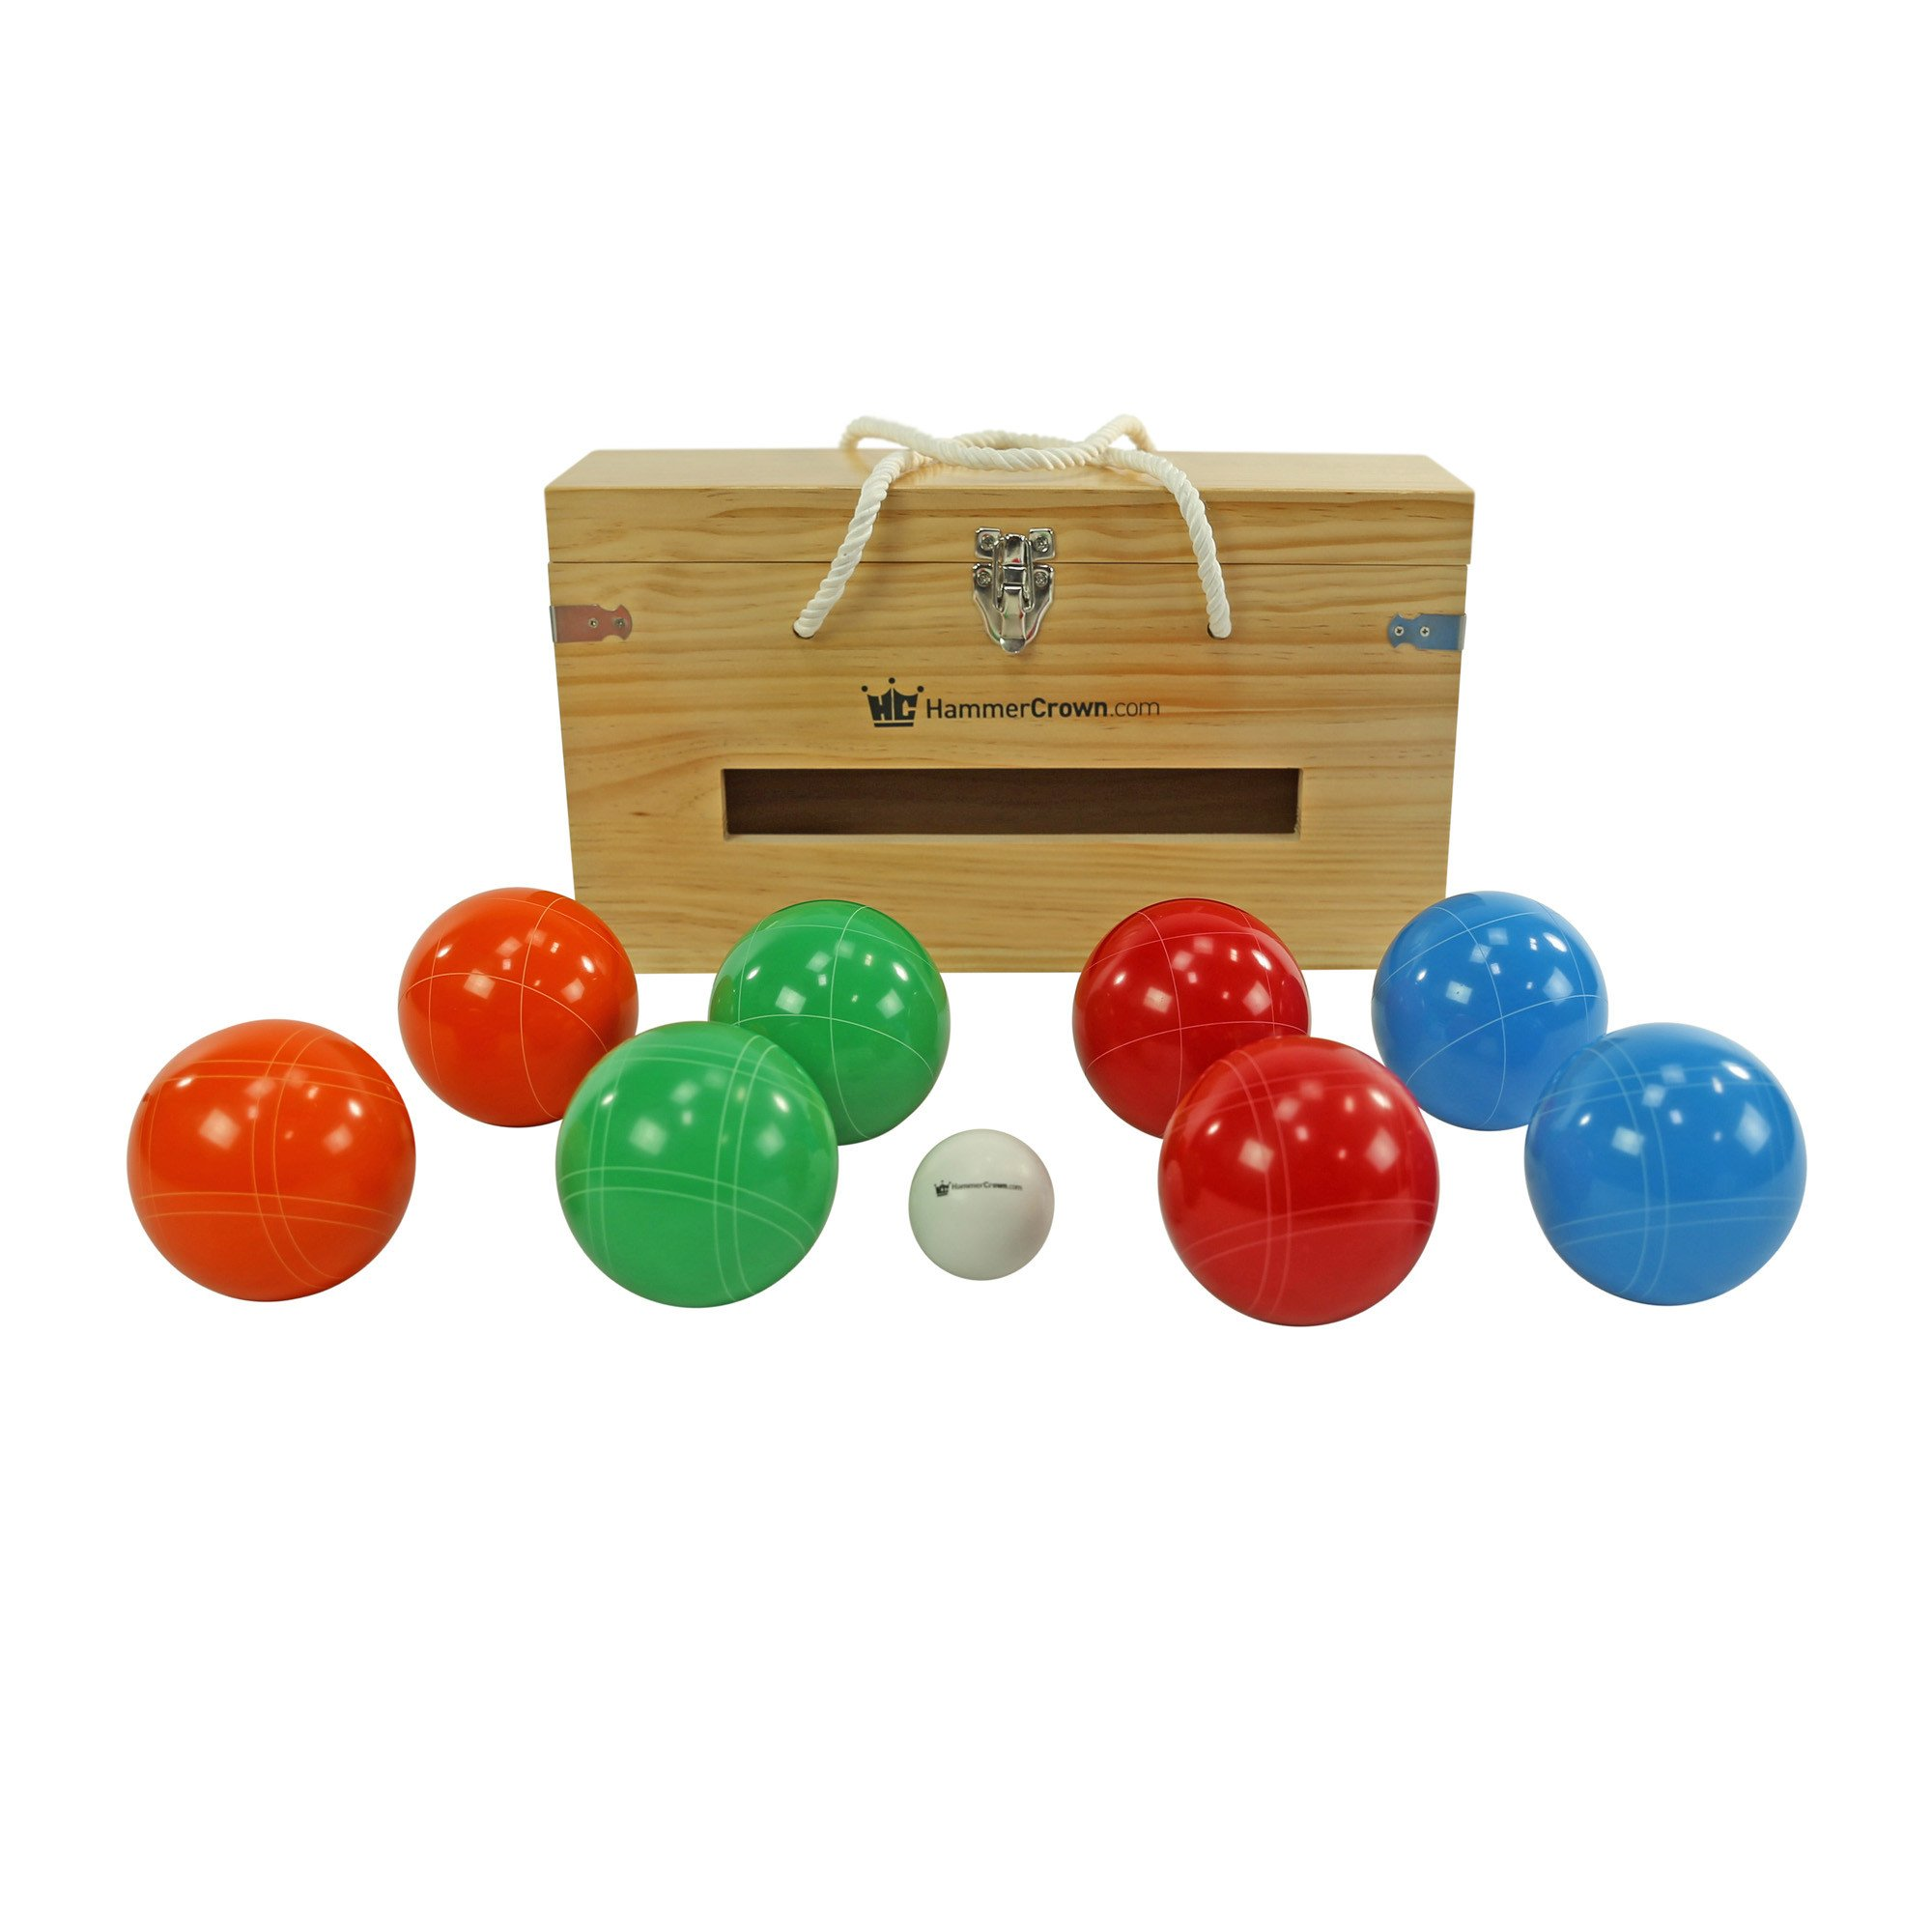 Hammer Crown Premium Bocce Ball Set in Wooden Box